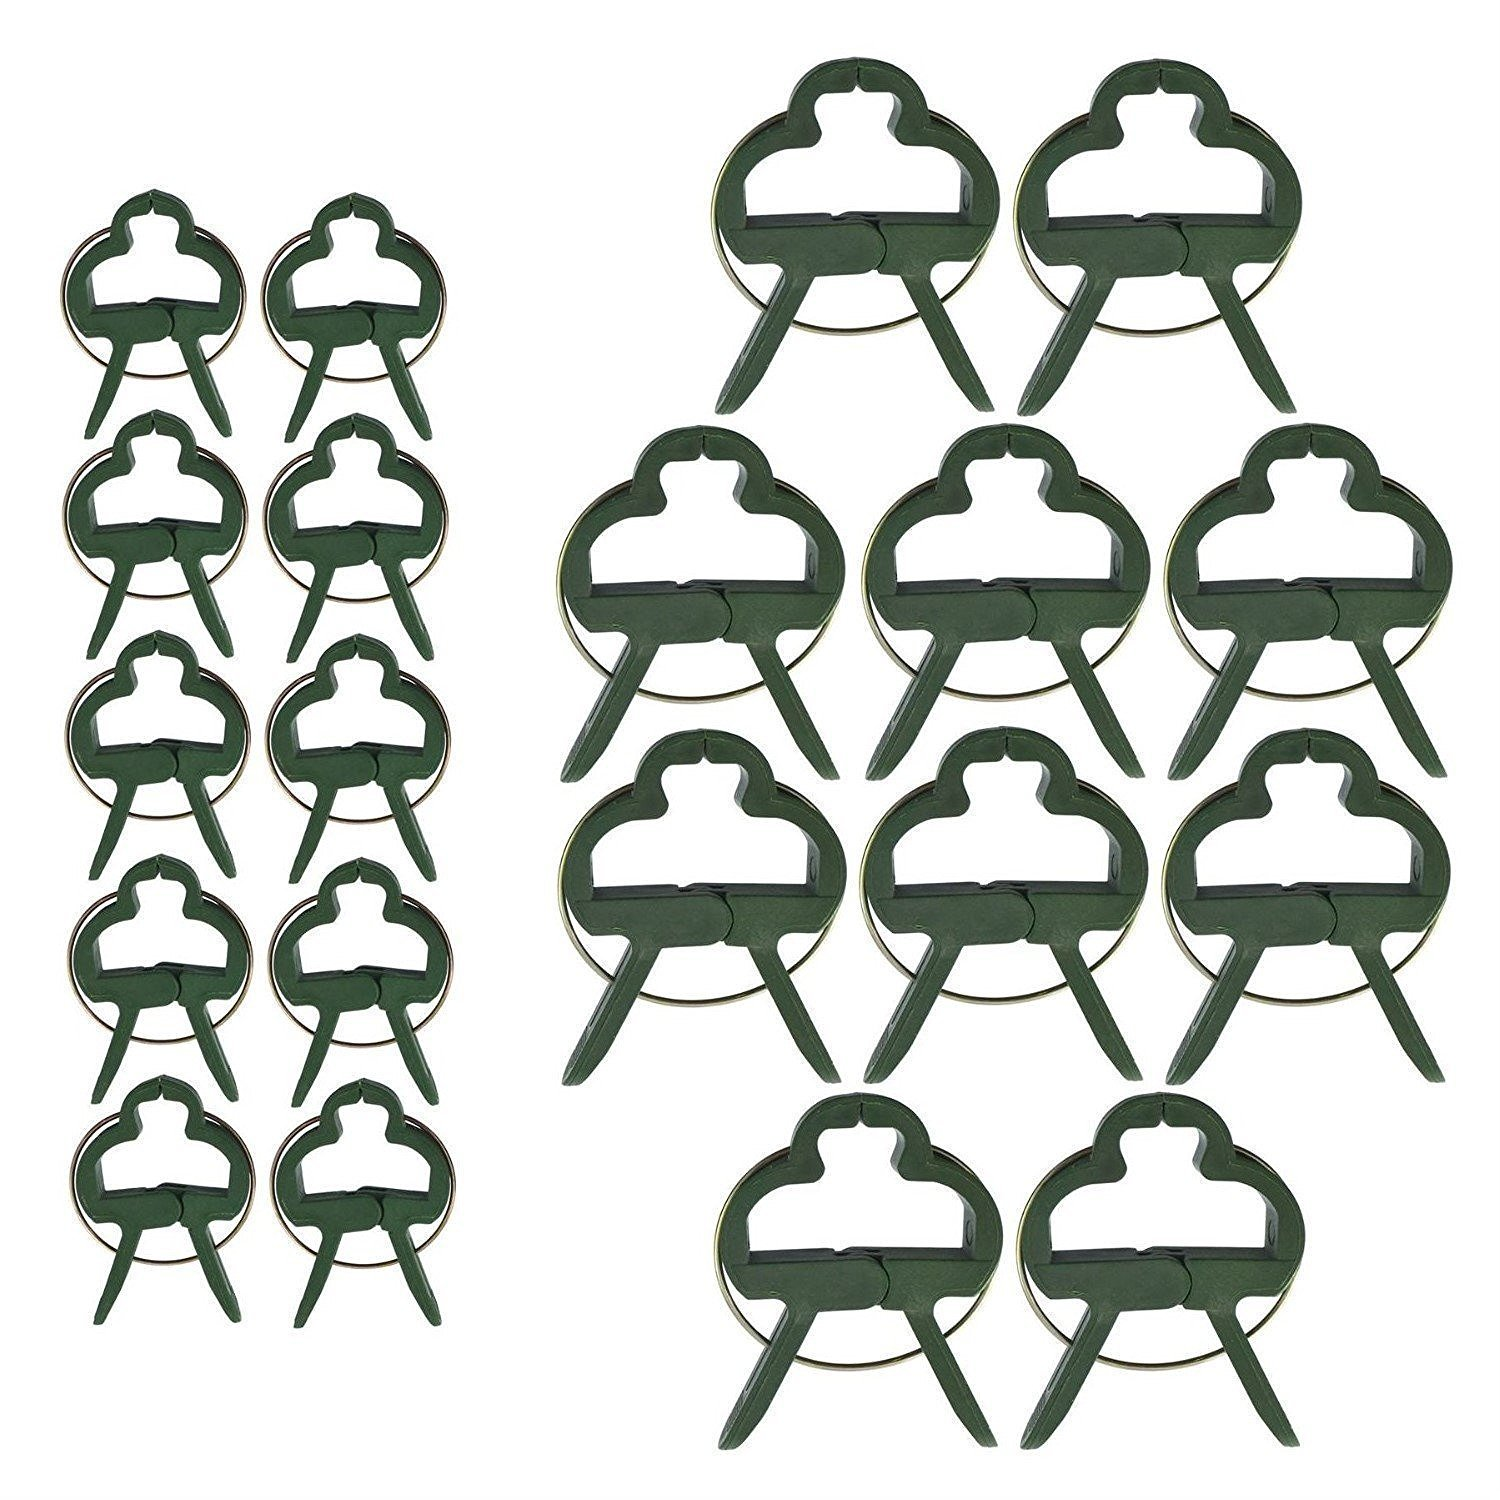 Vine Grow Upright LUTER 70pcs Plant Clips 2 Sizes Garden Clips Tomato Flower and Vine Support Clips for Supporting Stems Green